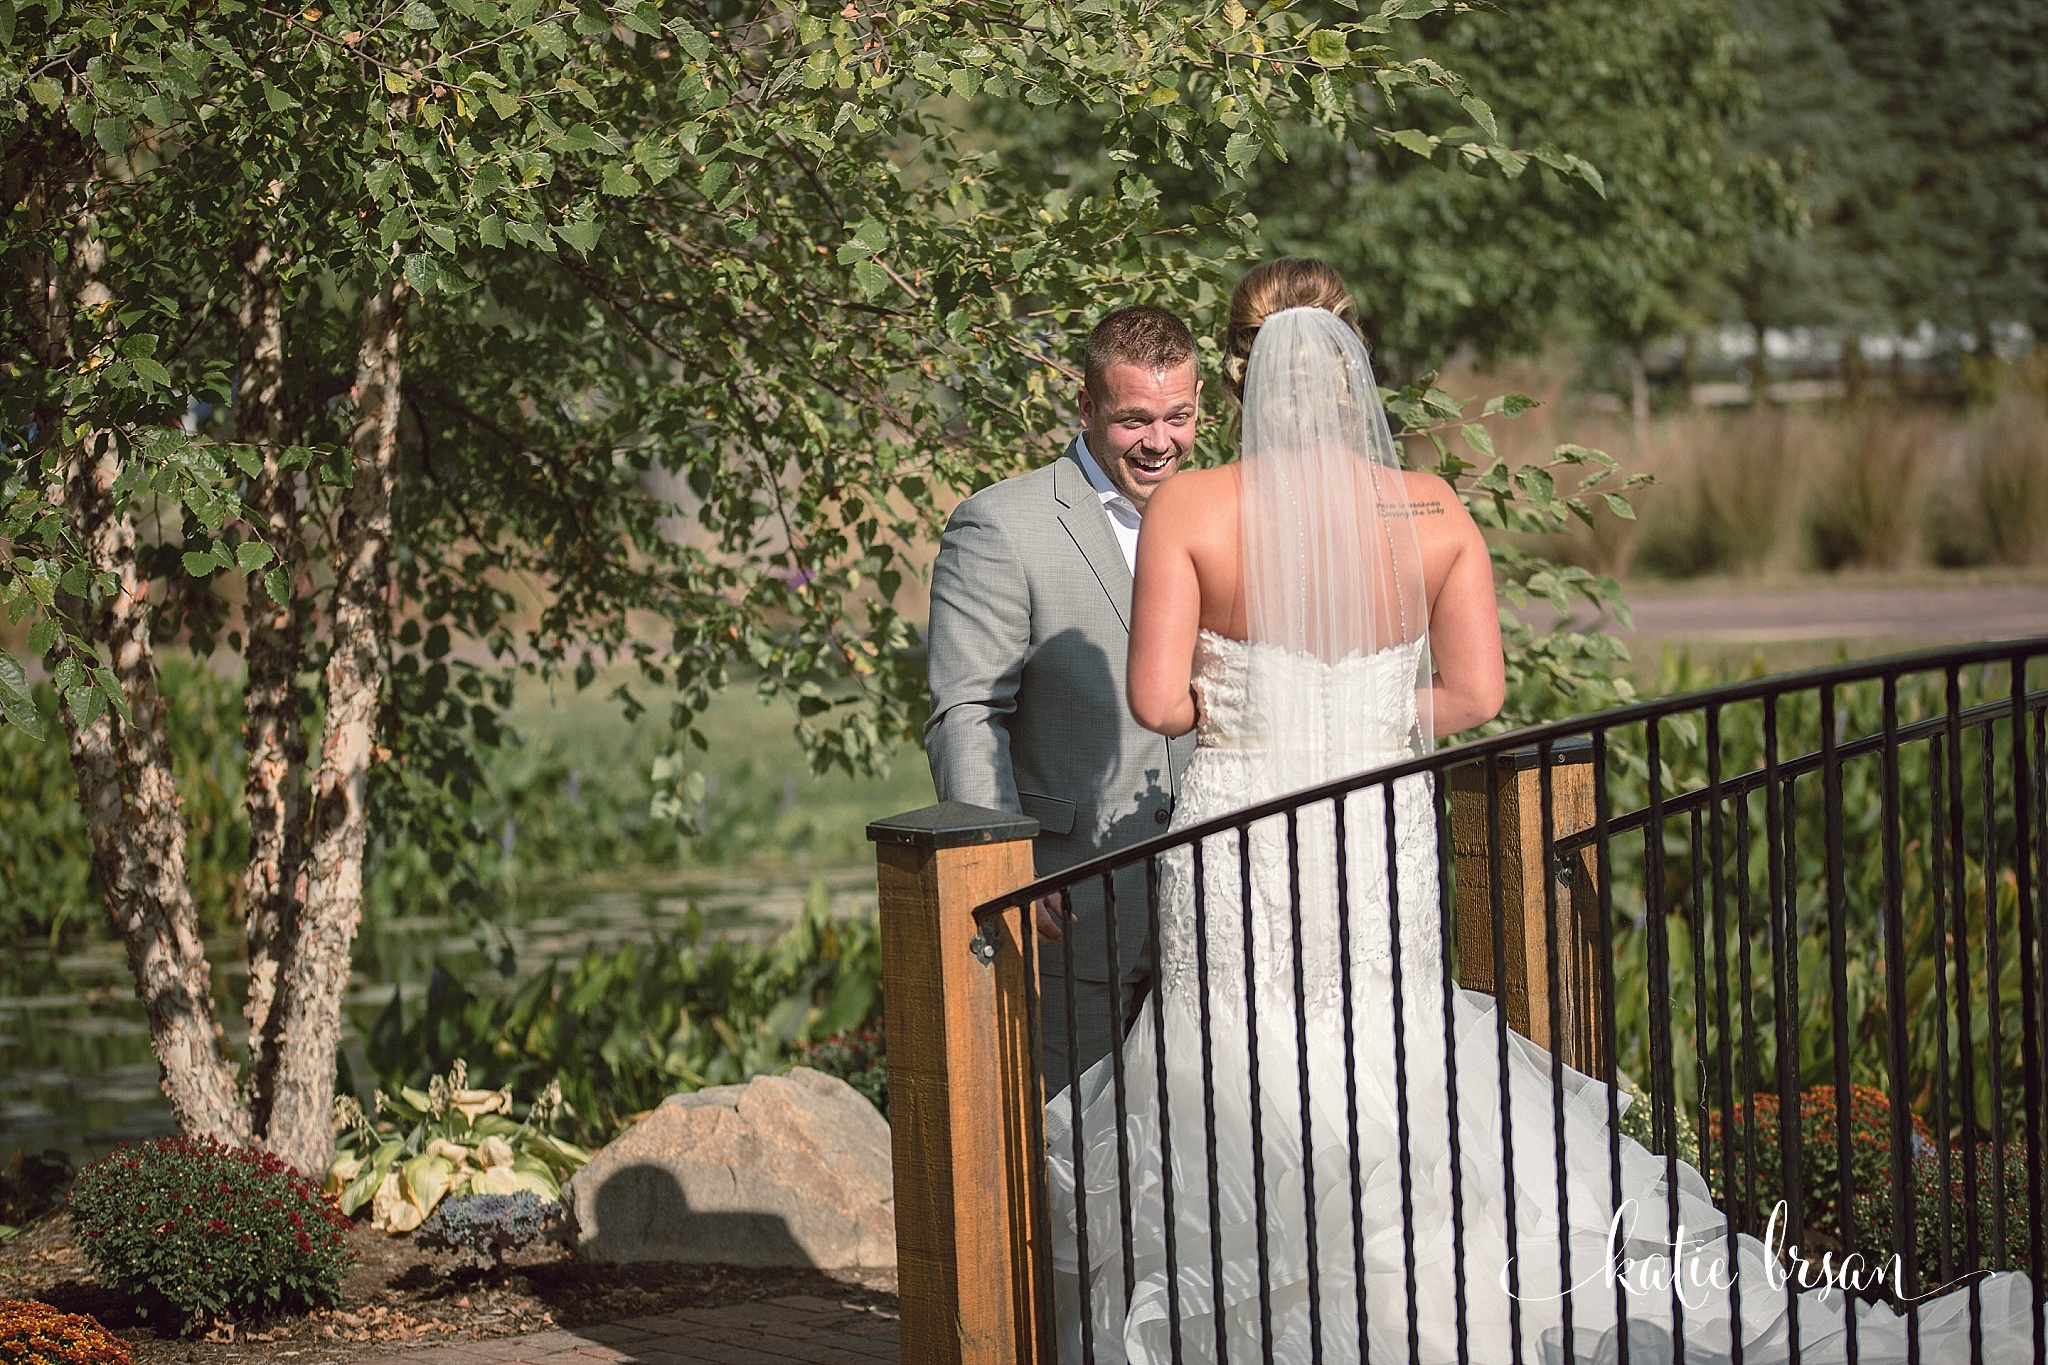 Fishermen'sInn_Wedding_Elburn_Chicago_Wedding_Photographer_1044.jpg